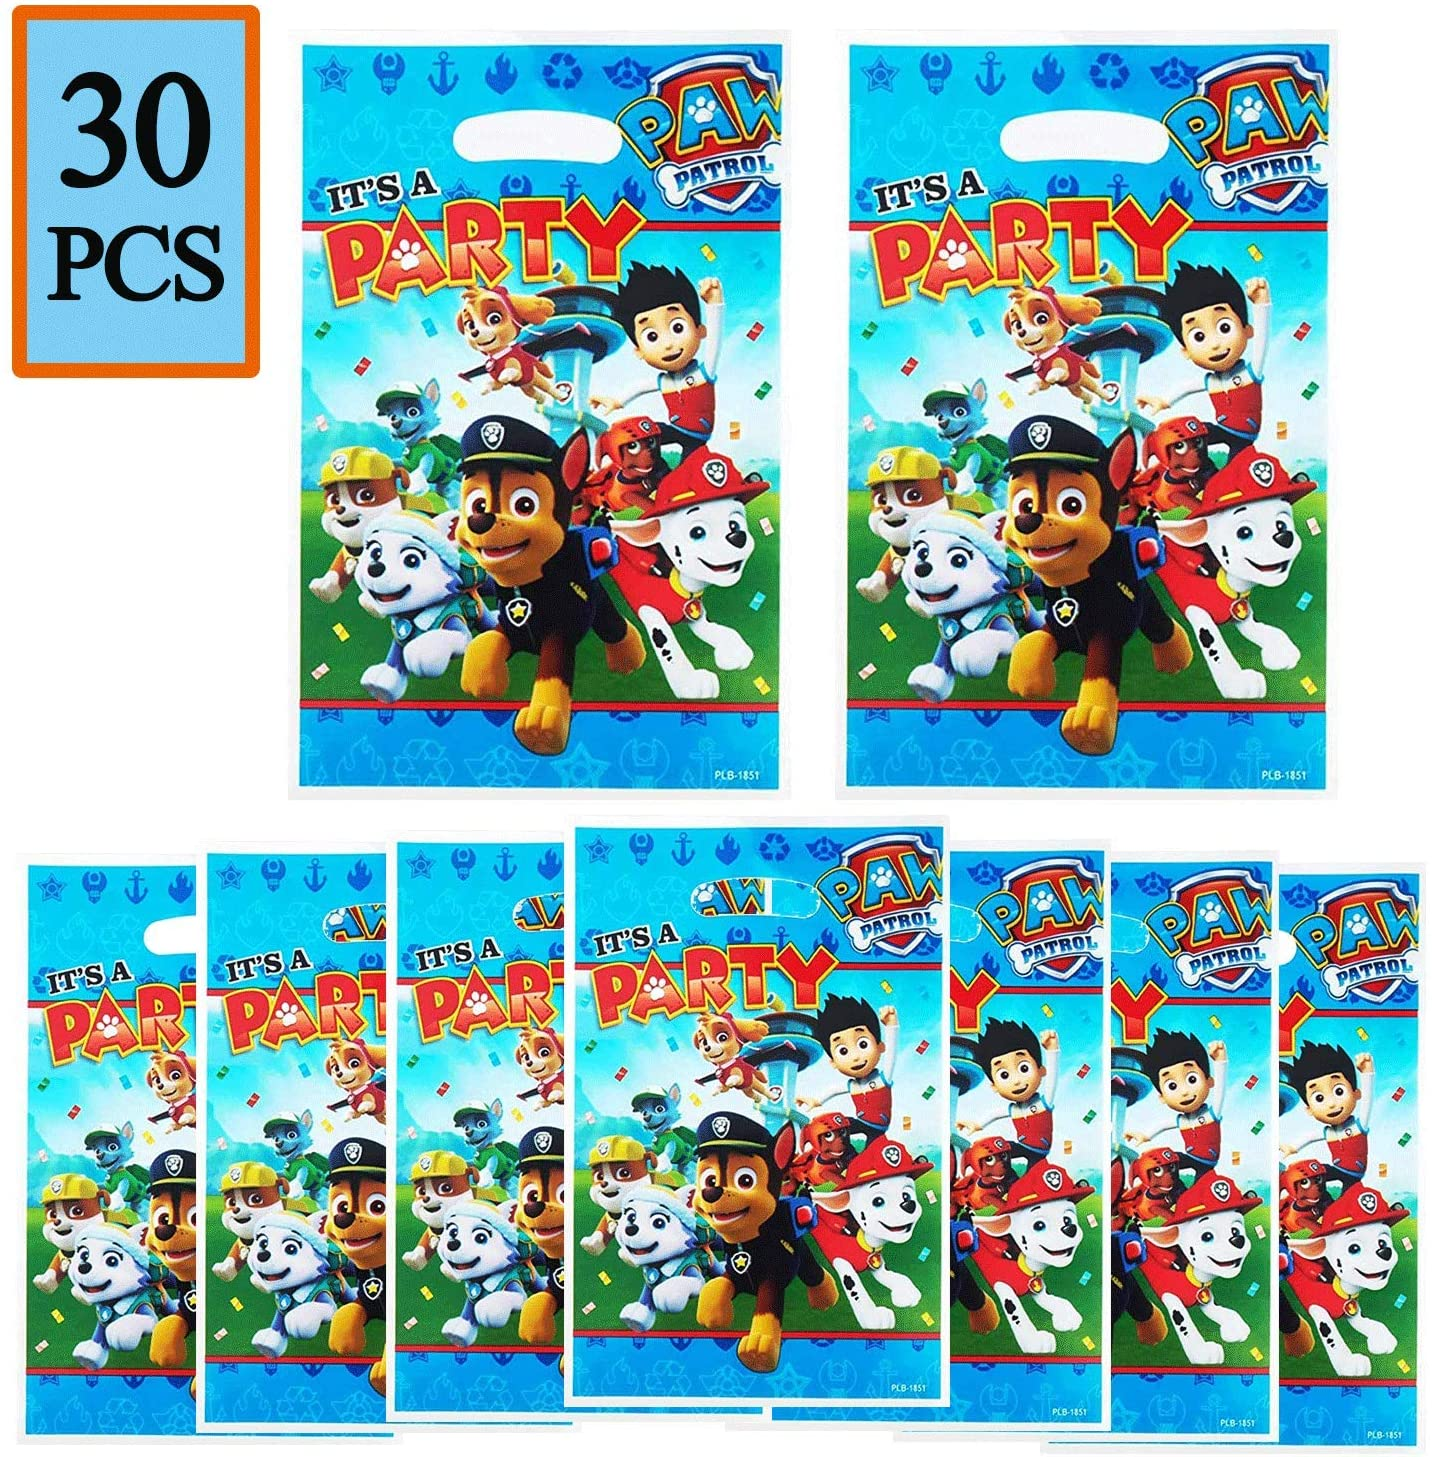 30 PCS PAW Dog Patrol Cute Party Gift Bags, PAW Dog Patrol Candies Bags Party Supplies for Kids Cute Dog Themed Party, Birthday Party Favors PAW Dog Patrol Goodie Bags for Girls or Boys